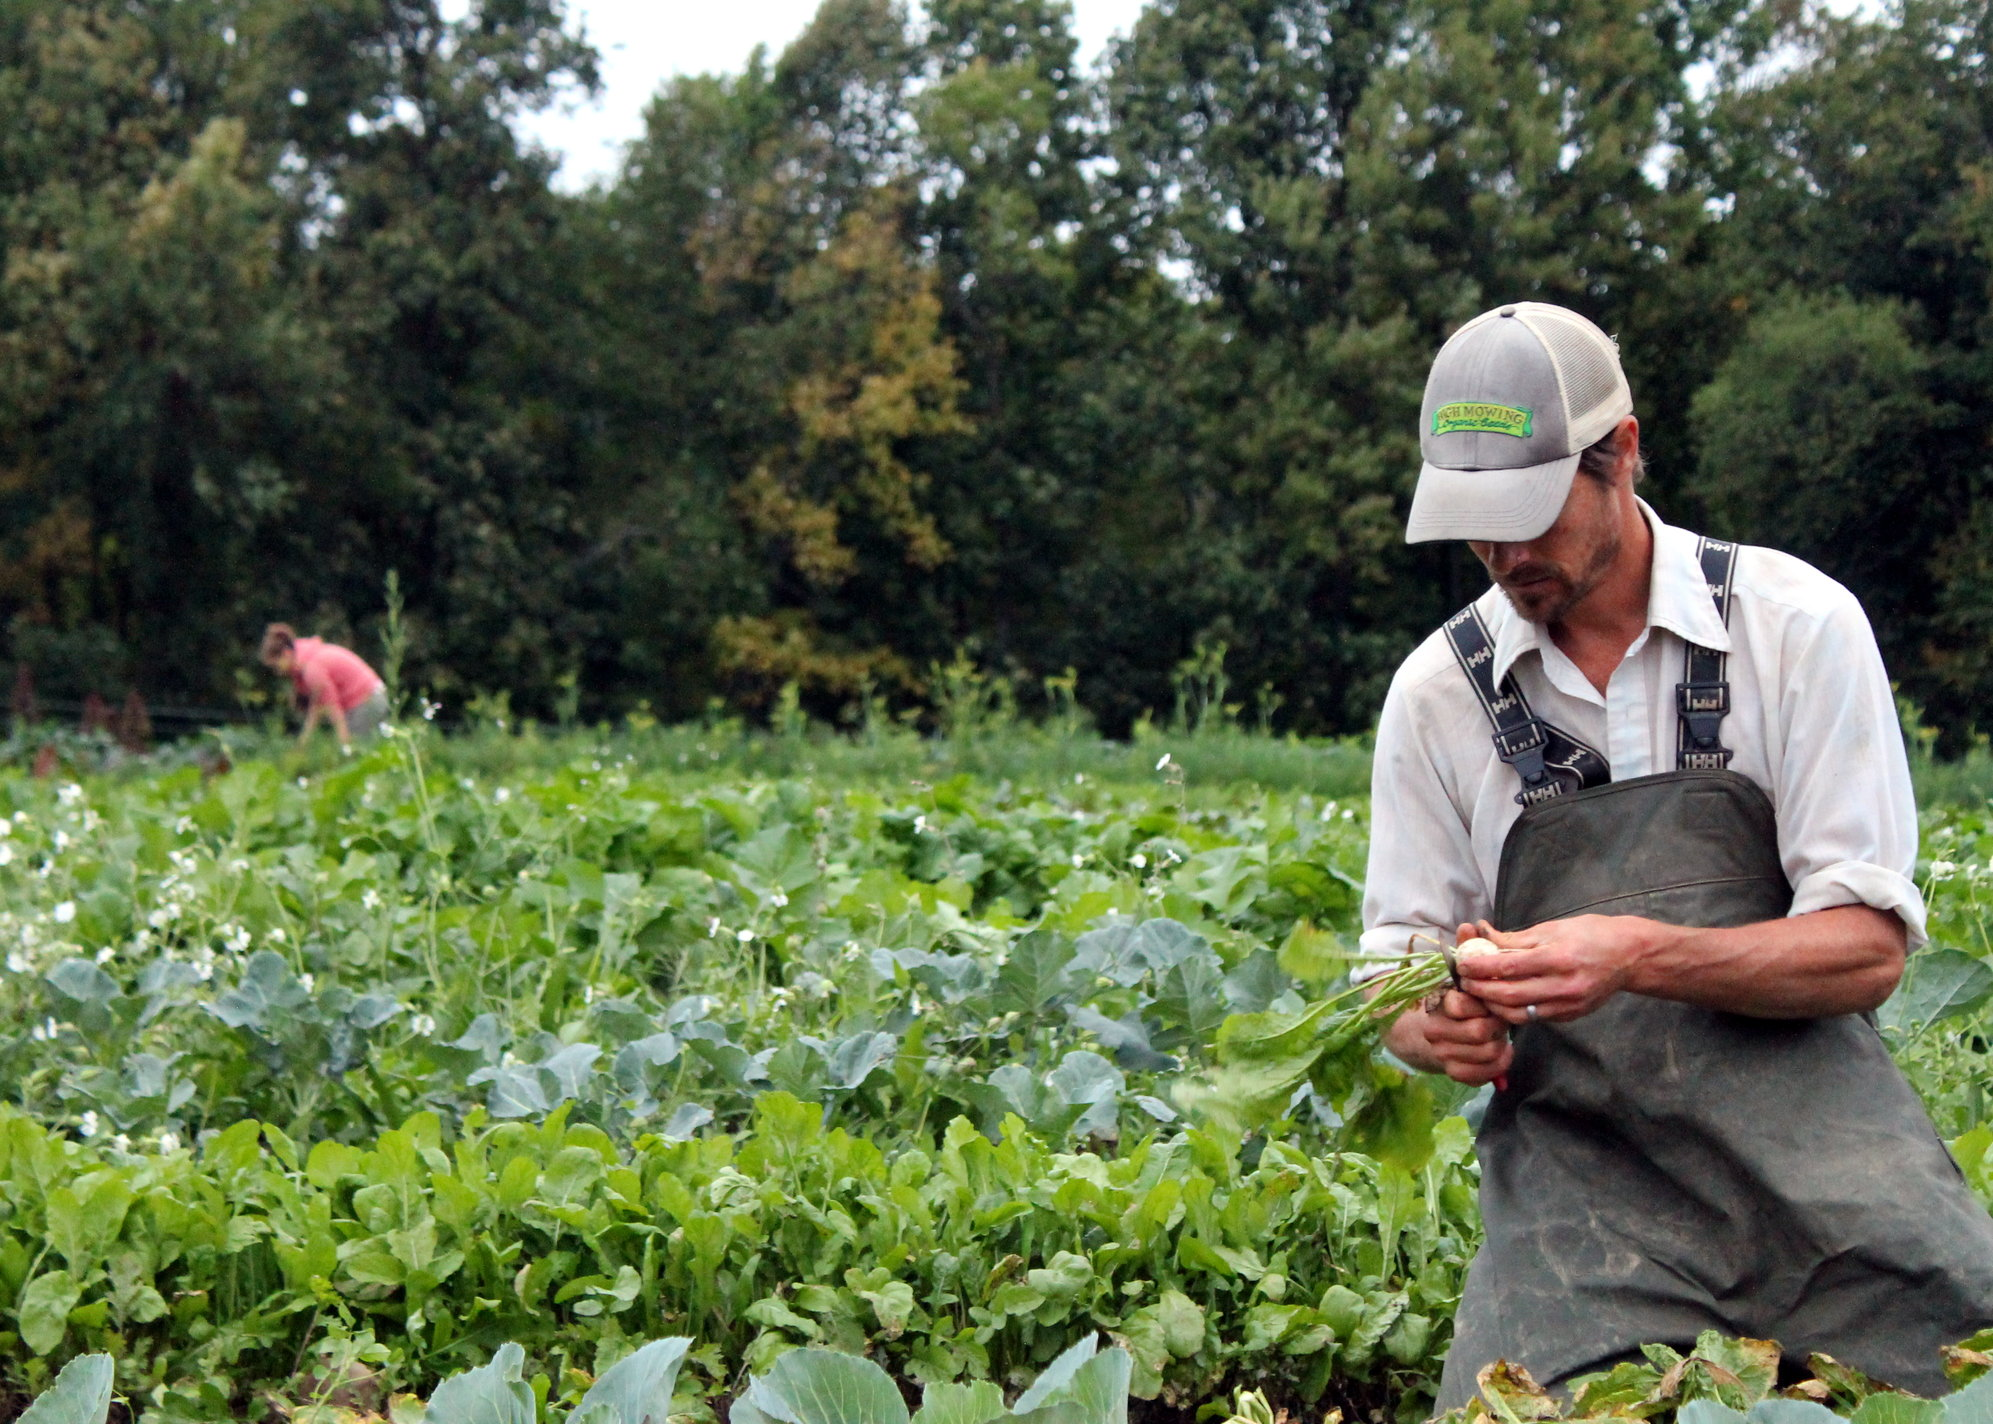 Real farm job problem politicion never tell you and why ?